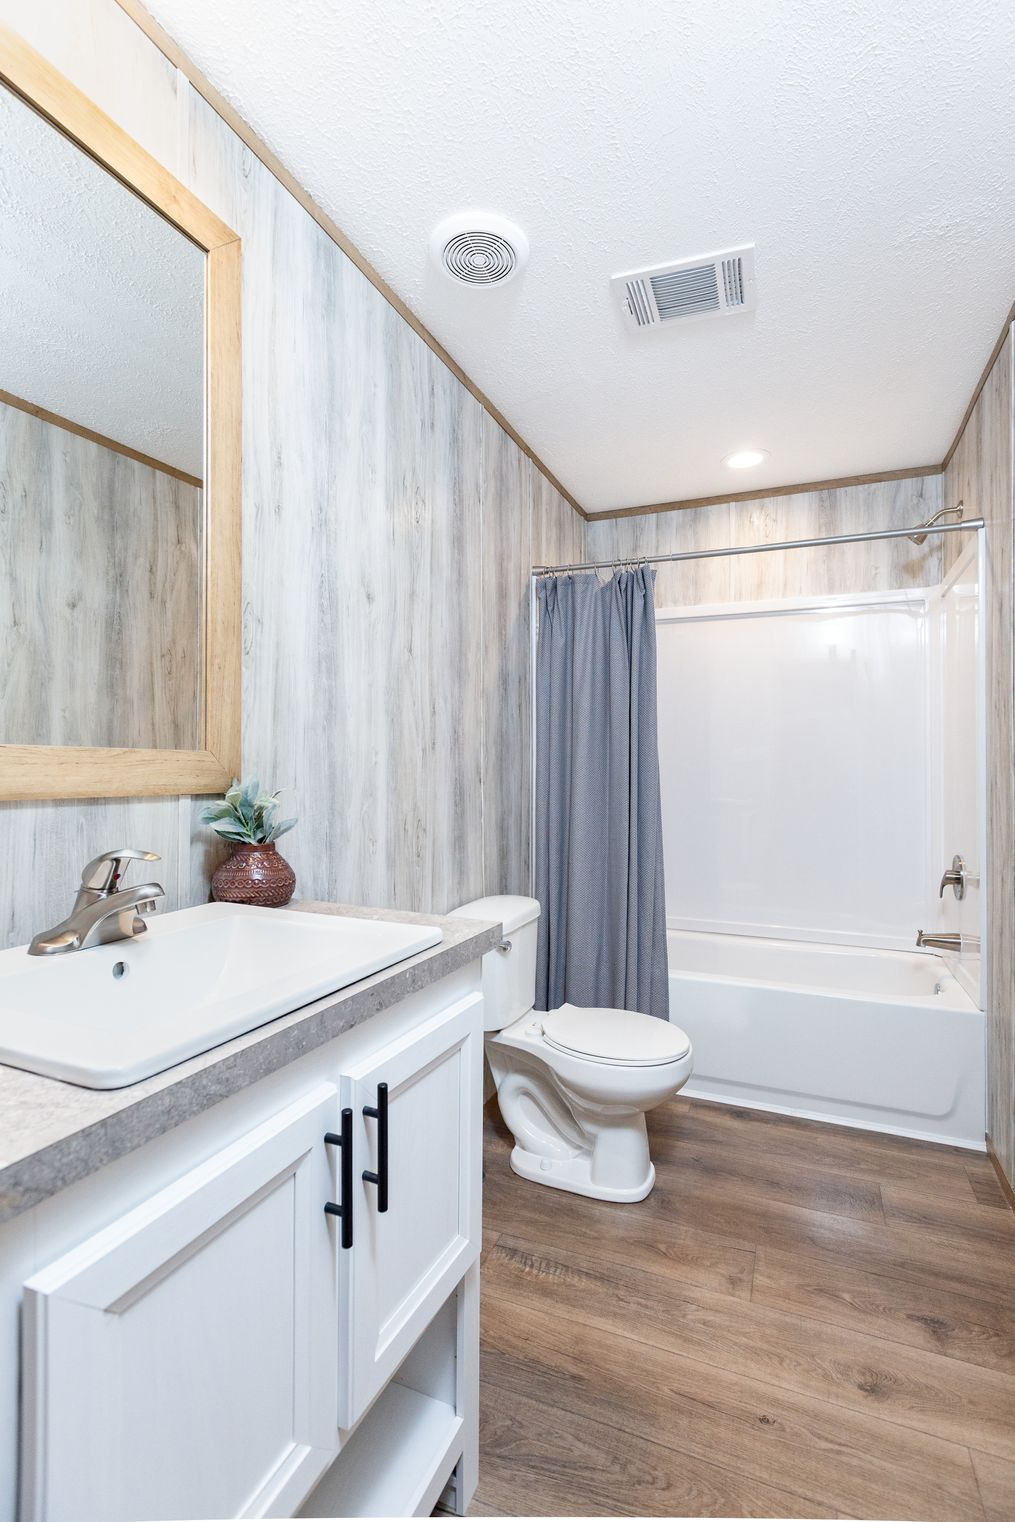 The EVEREST Guest Bathroom. This Manufactured Mobile Home features 4 bedrooms and 2 baths.